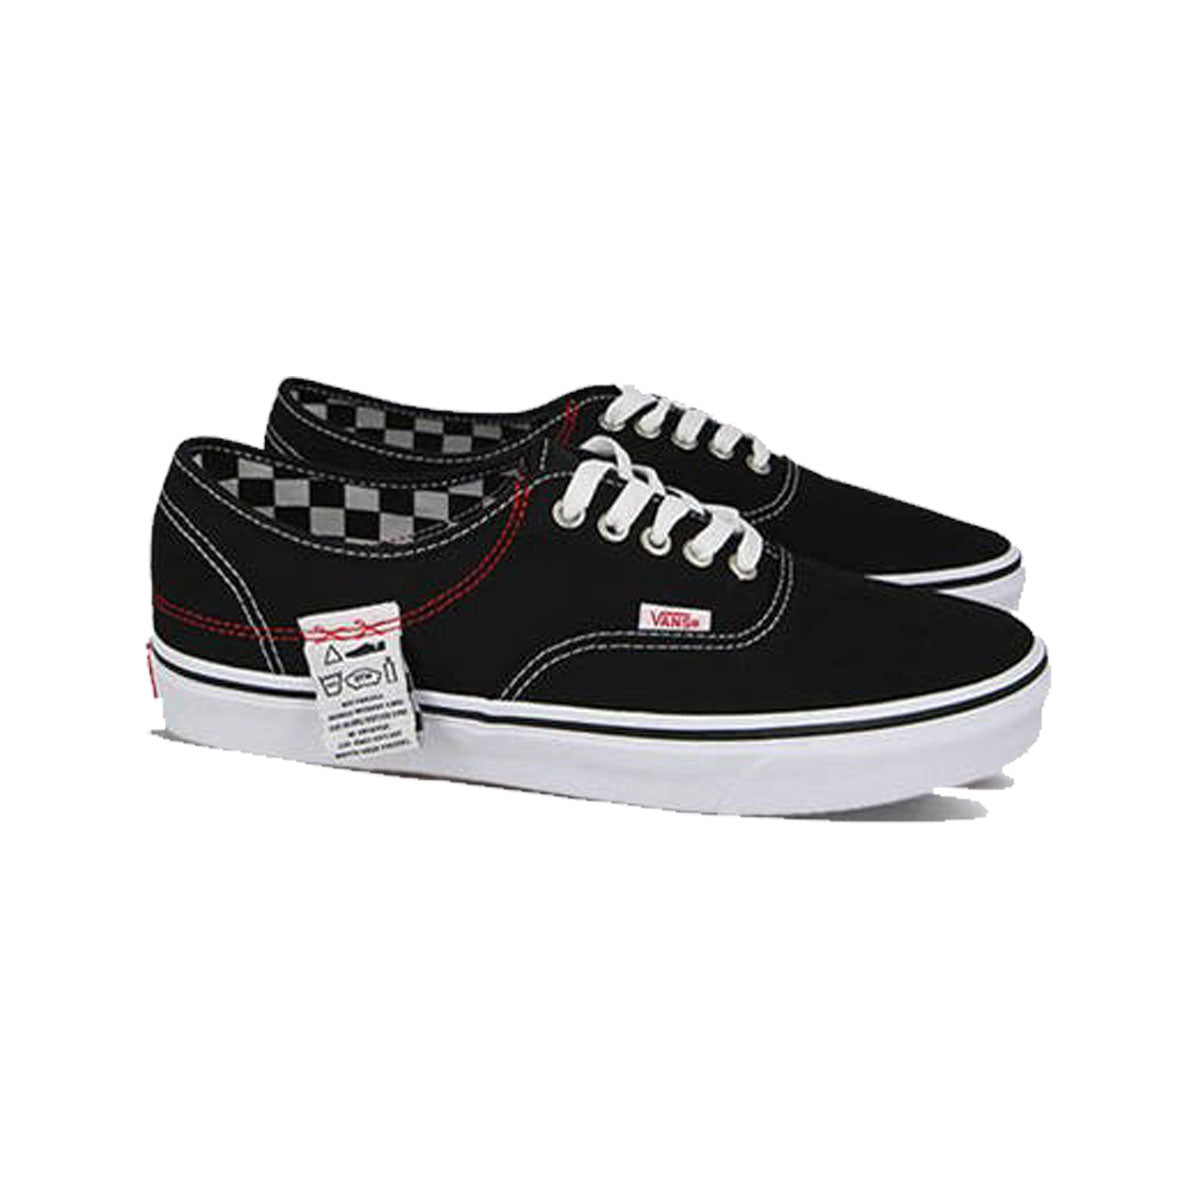 VANS AUTHENTIC DIY HC BLACK/TRUE WHITE UNISEX SNEAKERS VN0A4UUCU7B